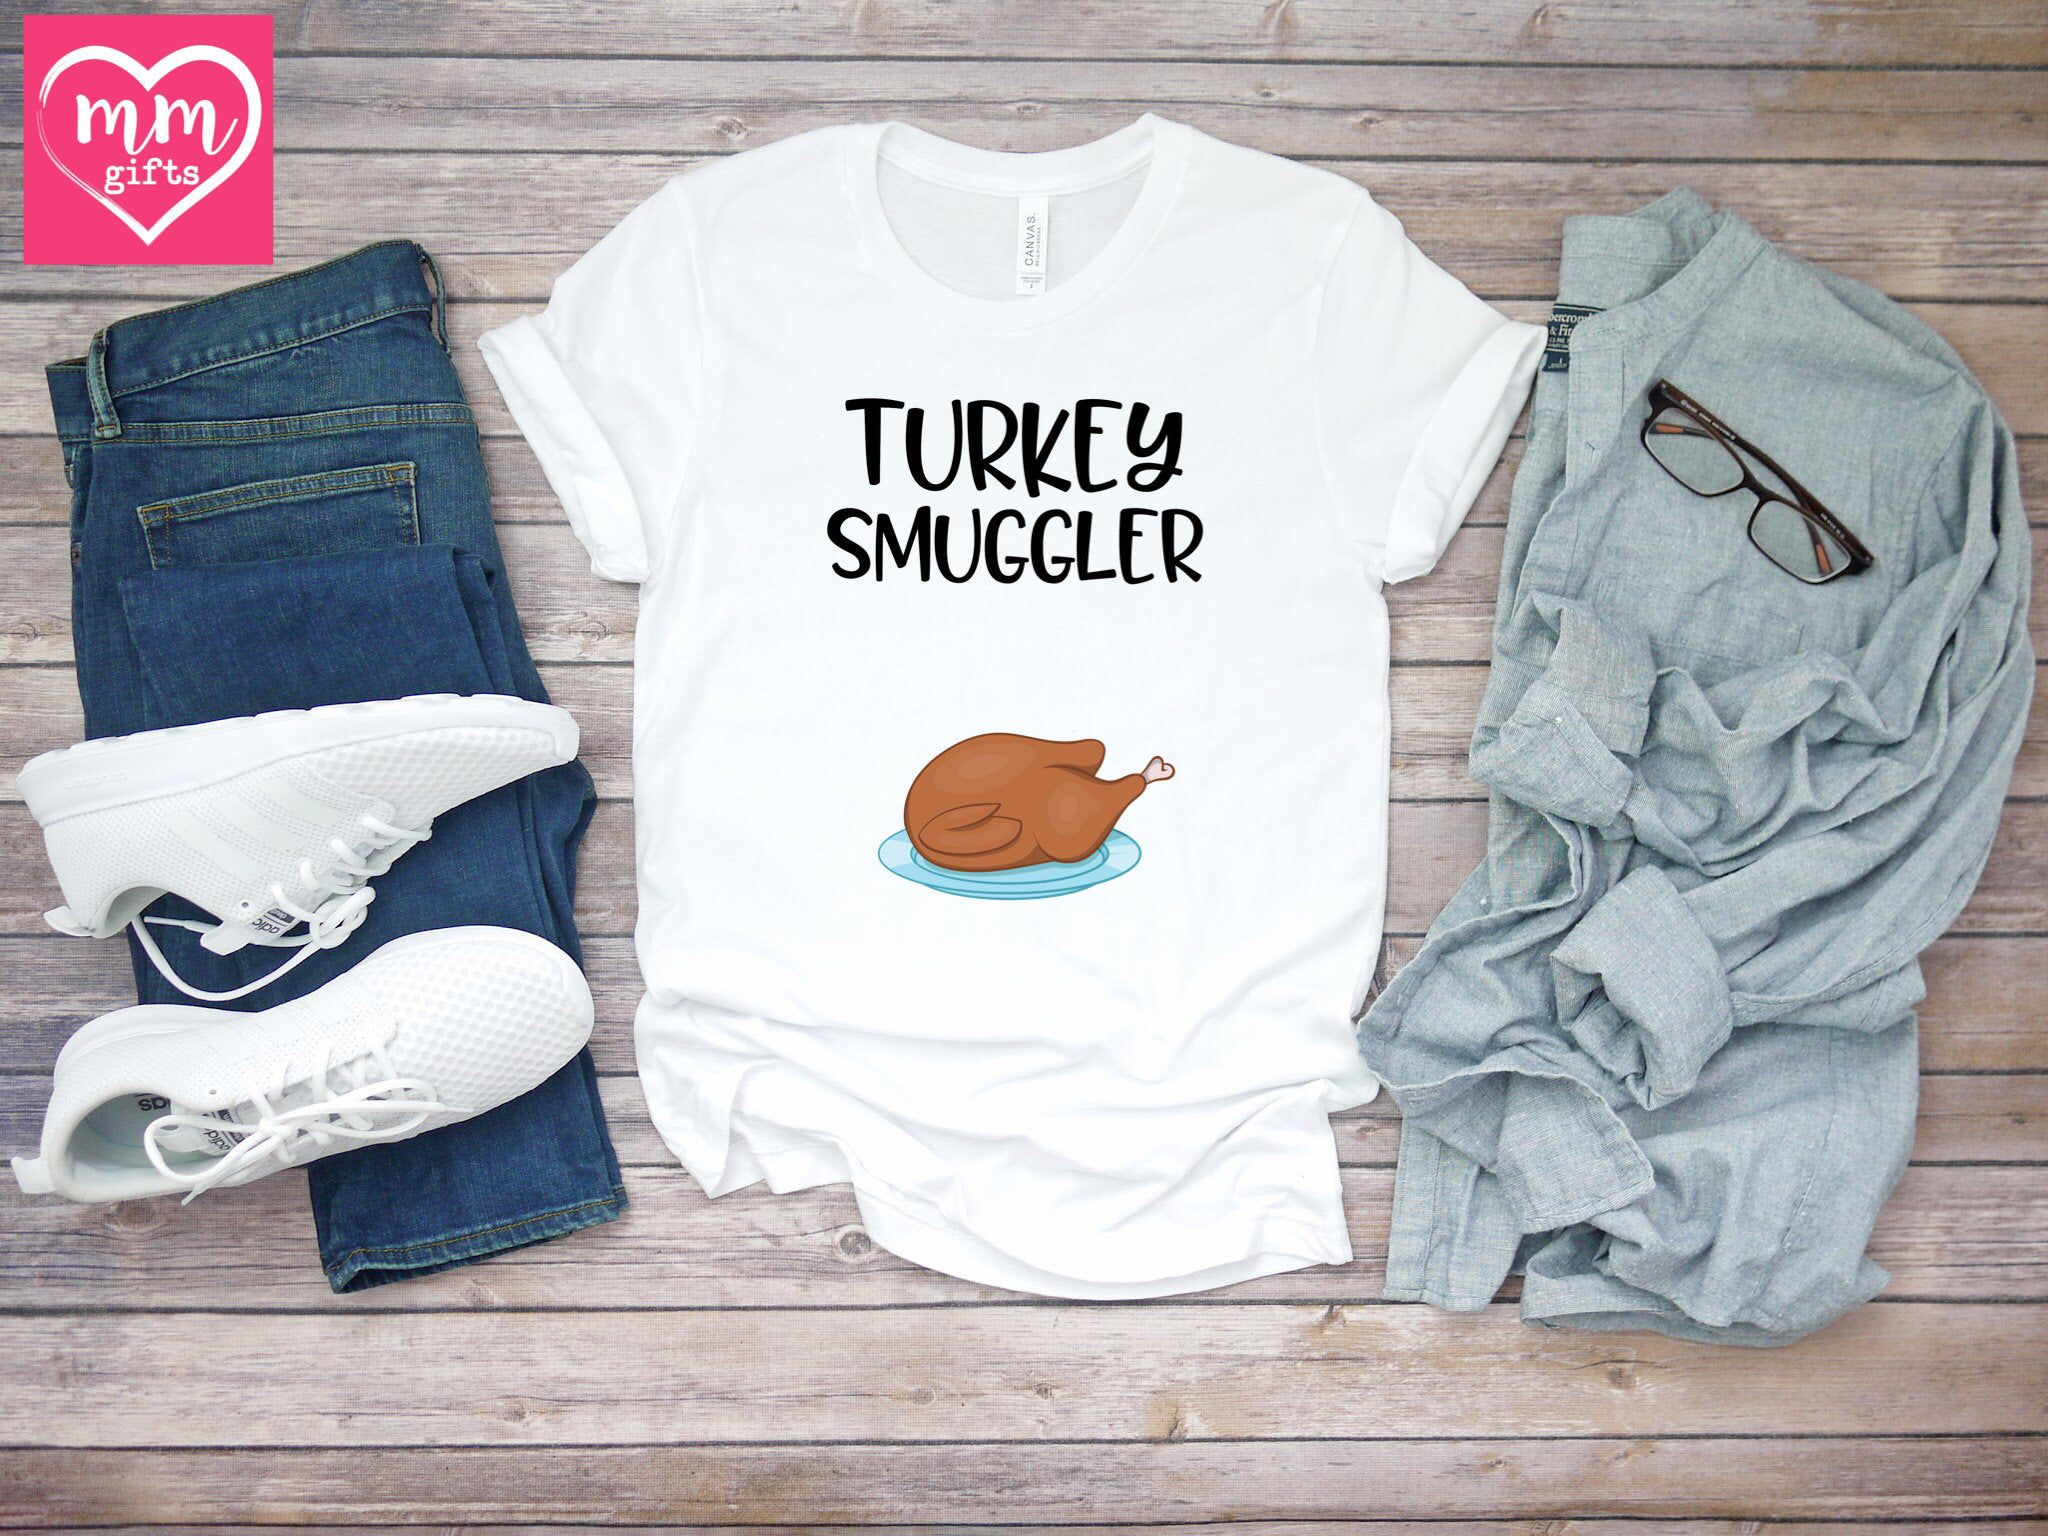 Cute Thanksgiving Pregnancy Announcement Tee, Funny Turkey Quote T-Shirt, Turkey Smuggler Short-Sleeve Unisex T-Shirt